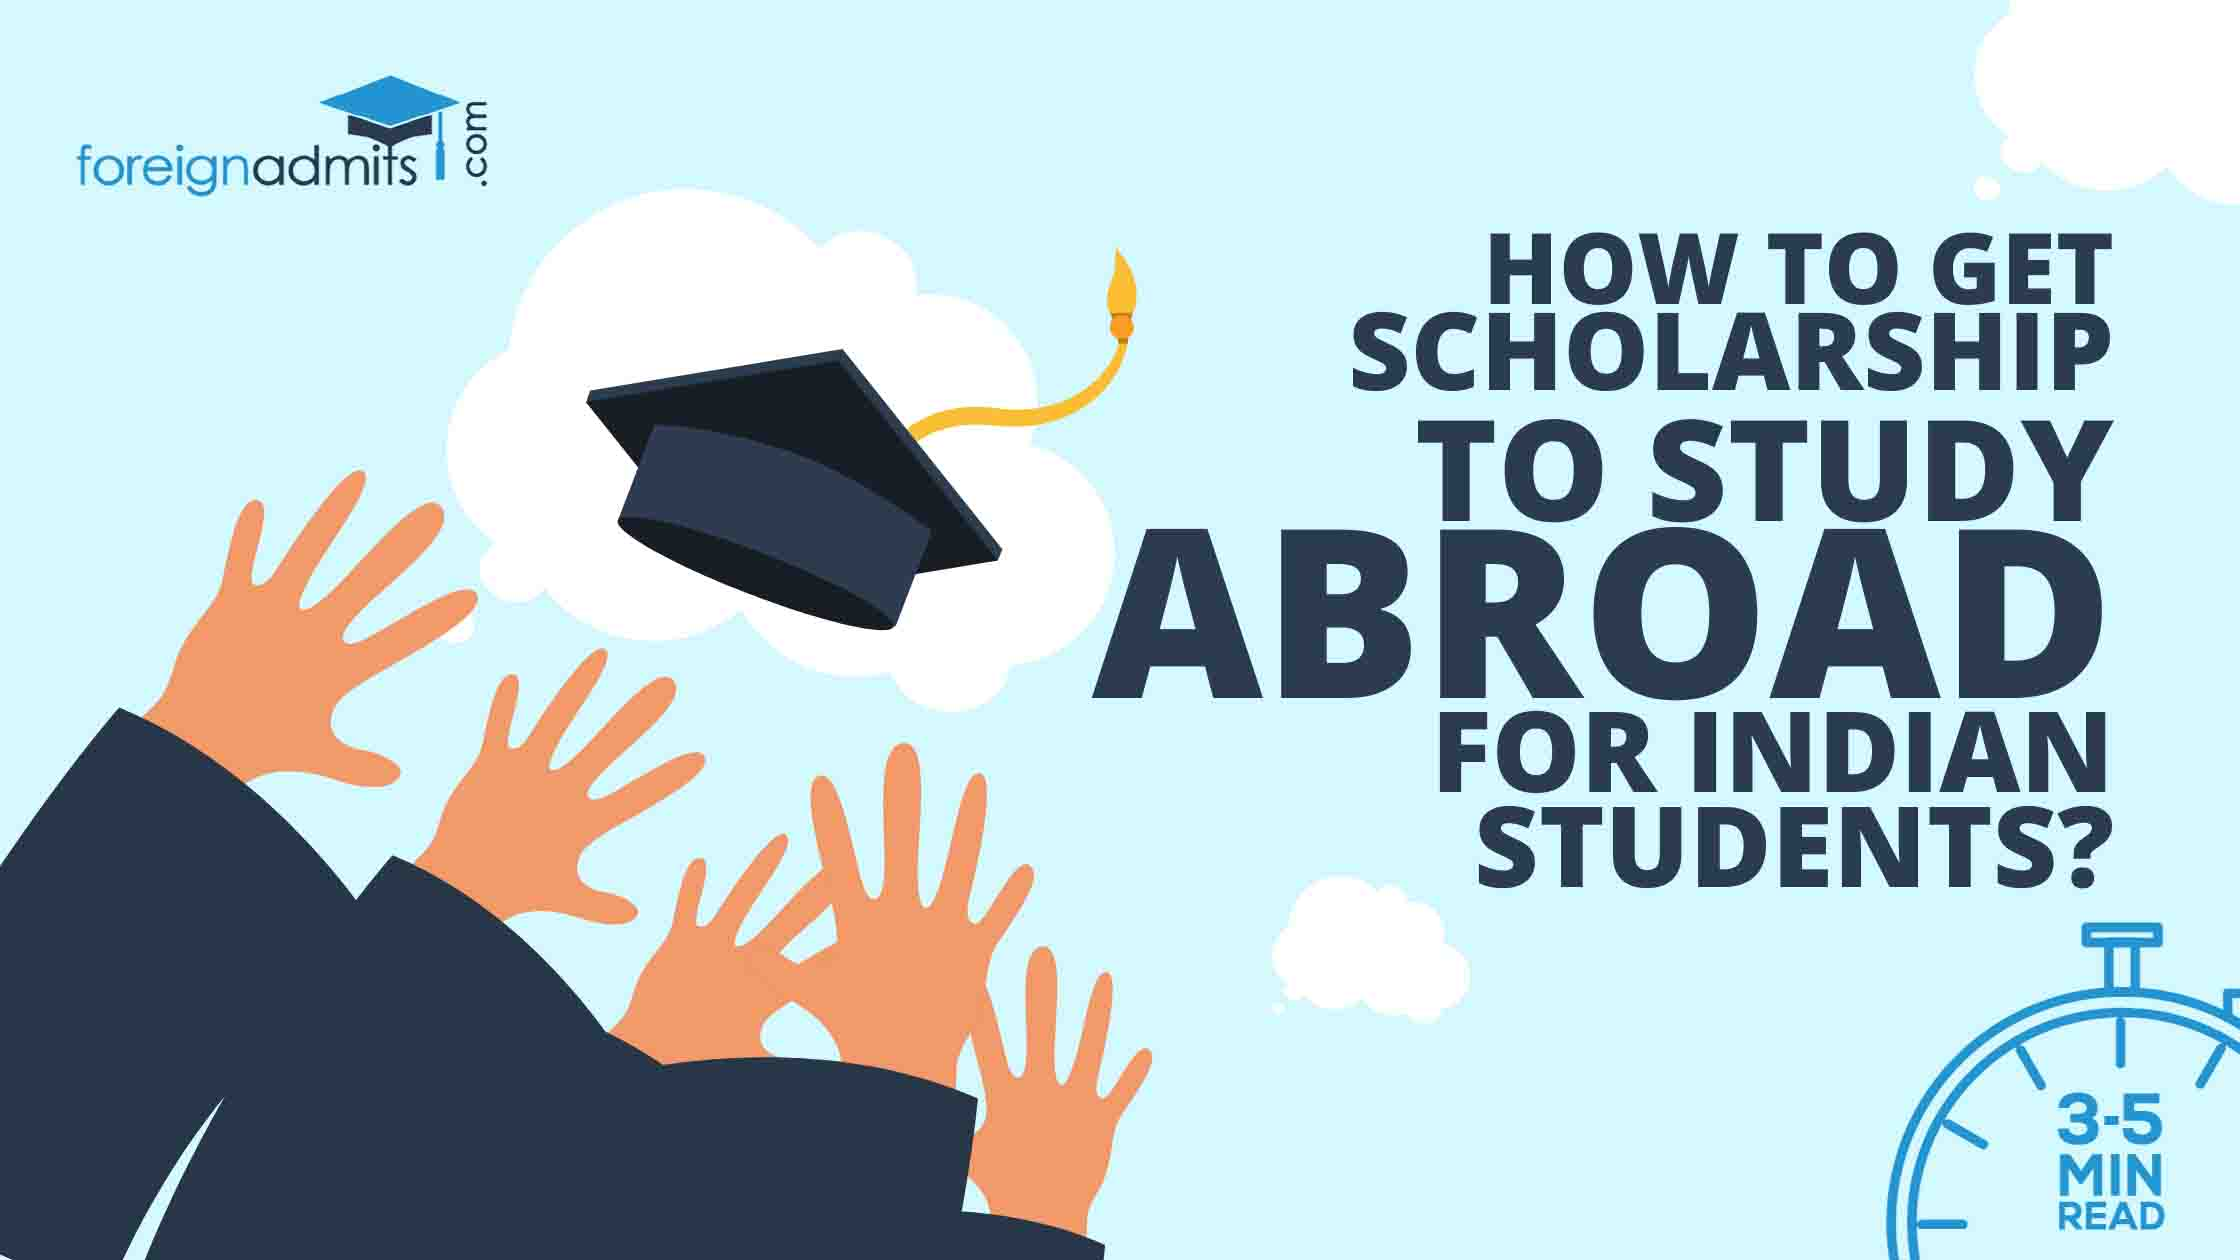 How to Get a Scholarship to Study Abroad for Indian Students?